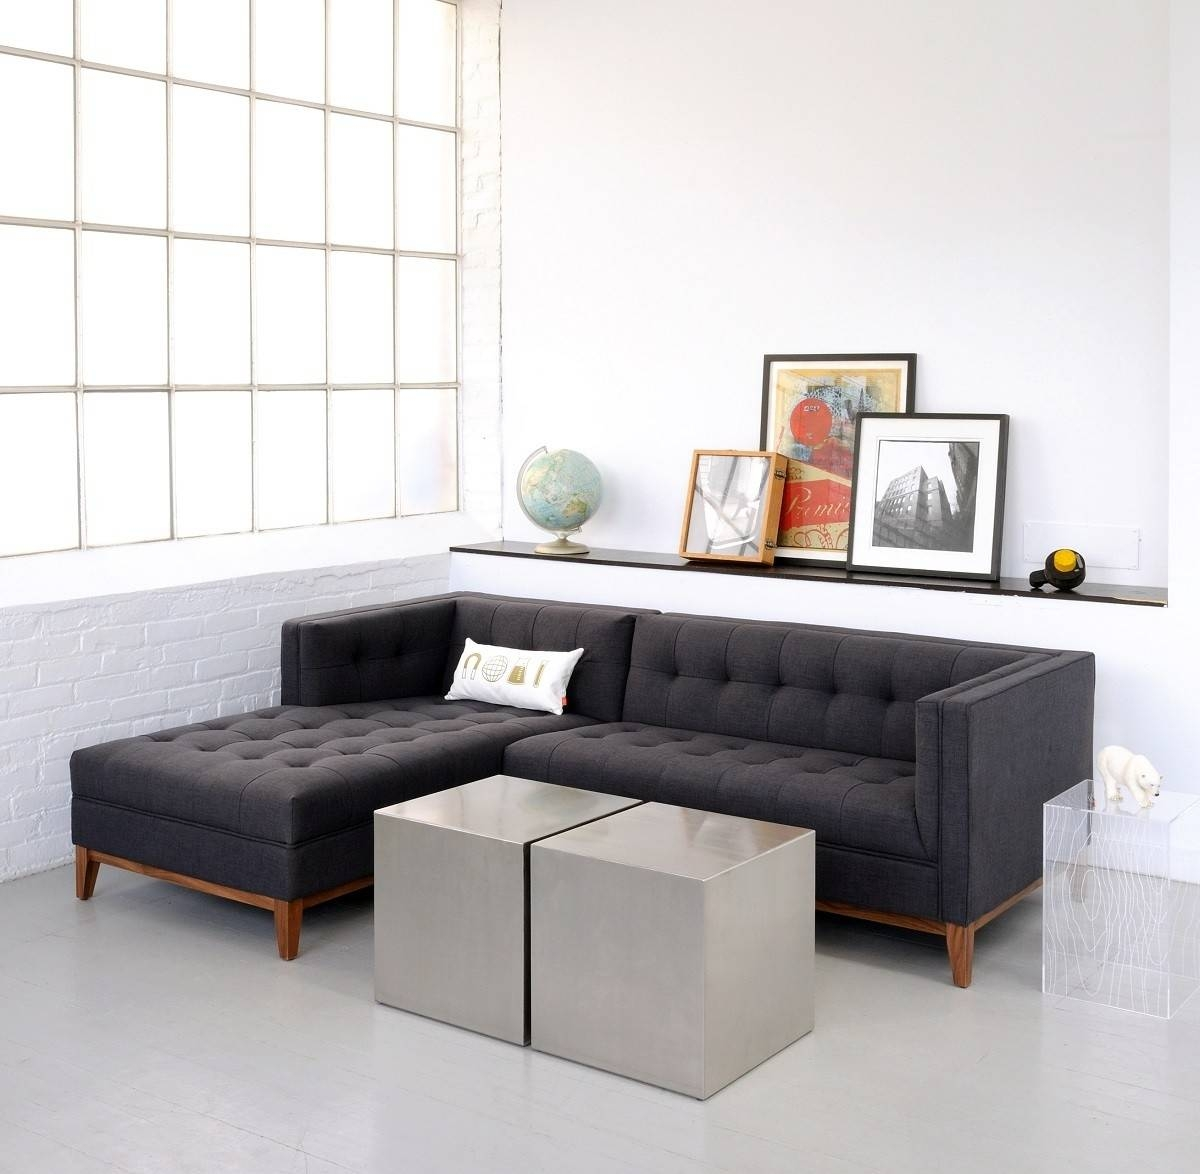 Perfect Apartment Size Sectional Sofas 92 For High Sleeper With in High Sleeper With Desk And Sofa (Image 21 of 30)